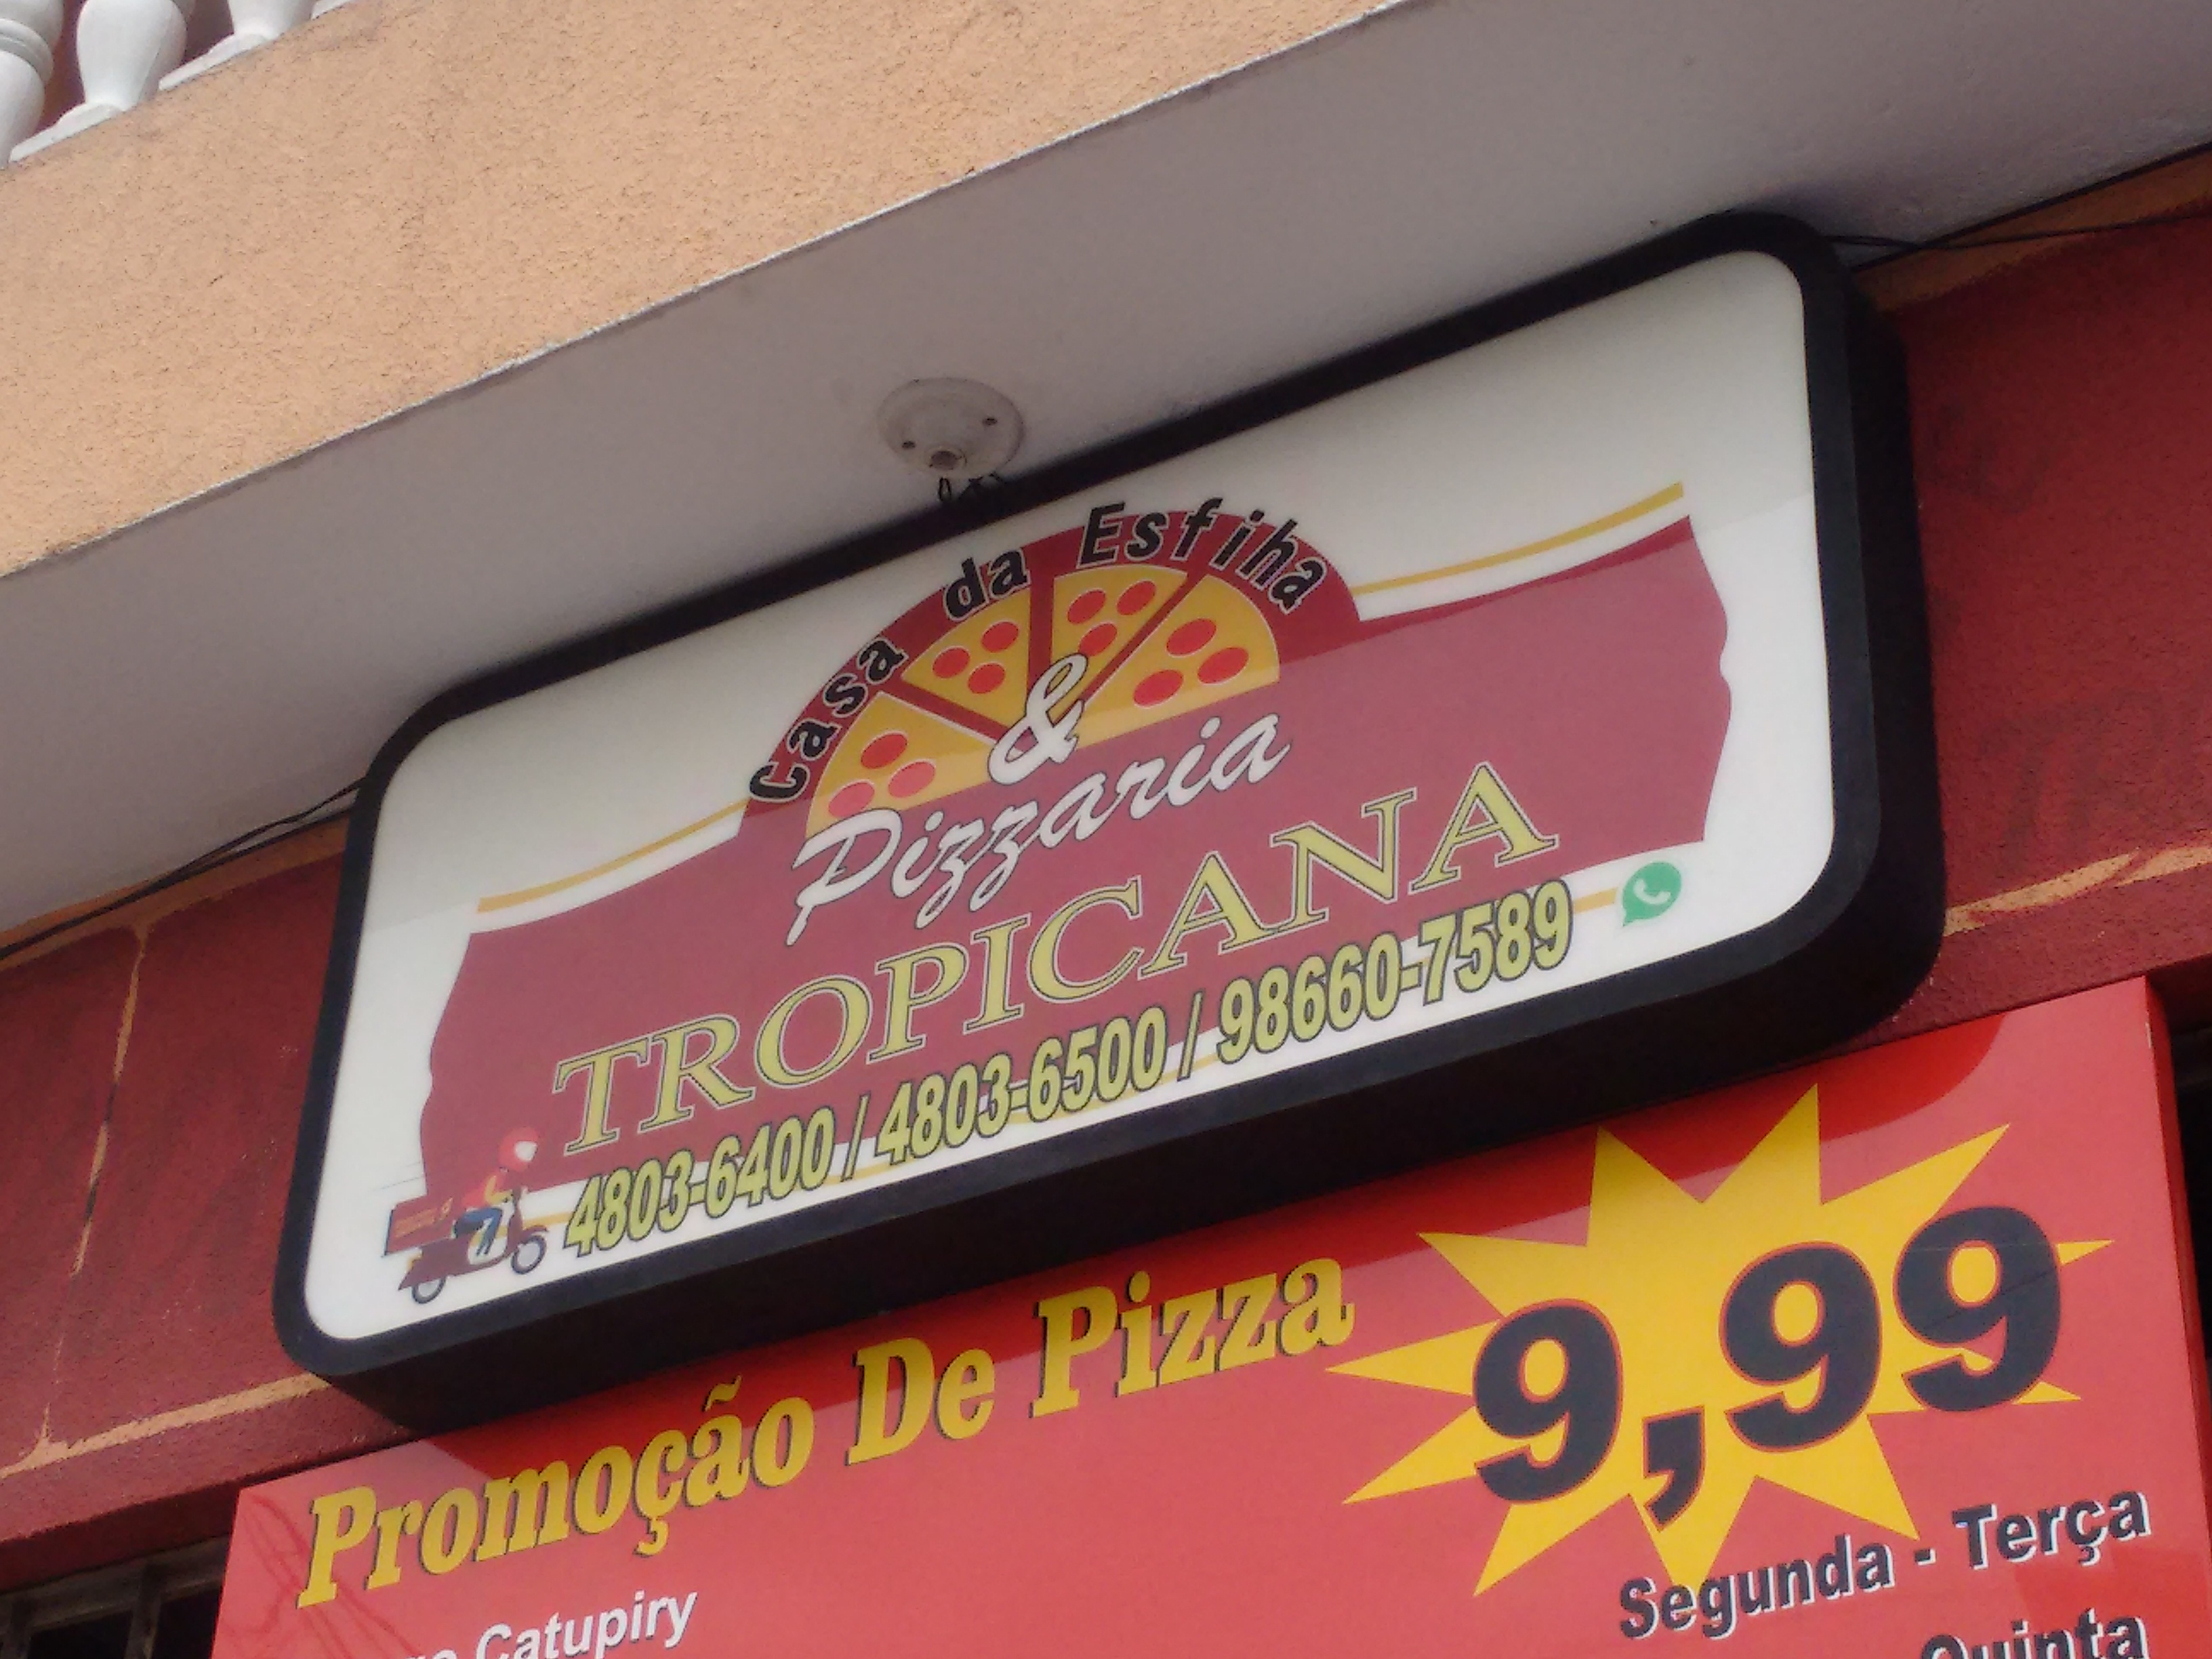 casa da Esfiha e Pizzaria Topicana.